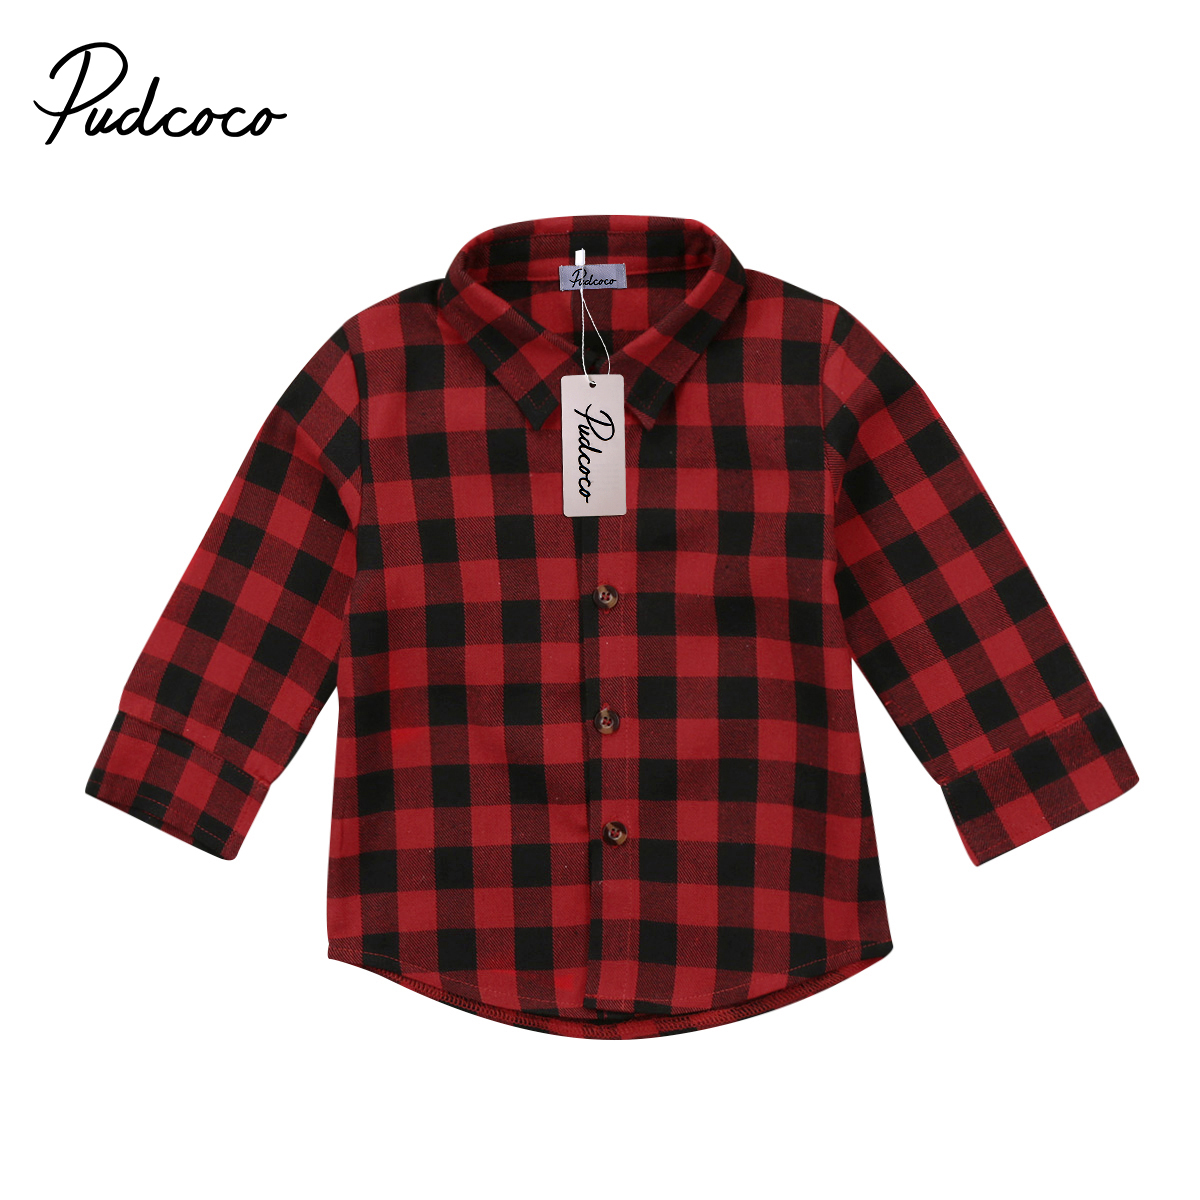 Fashion Toddler Kids Baby Boys Girls Red Black Plaid Tops Casual